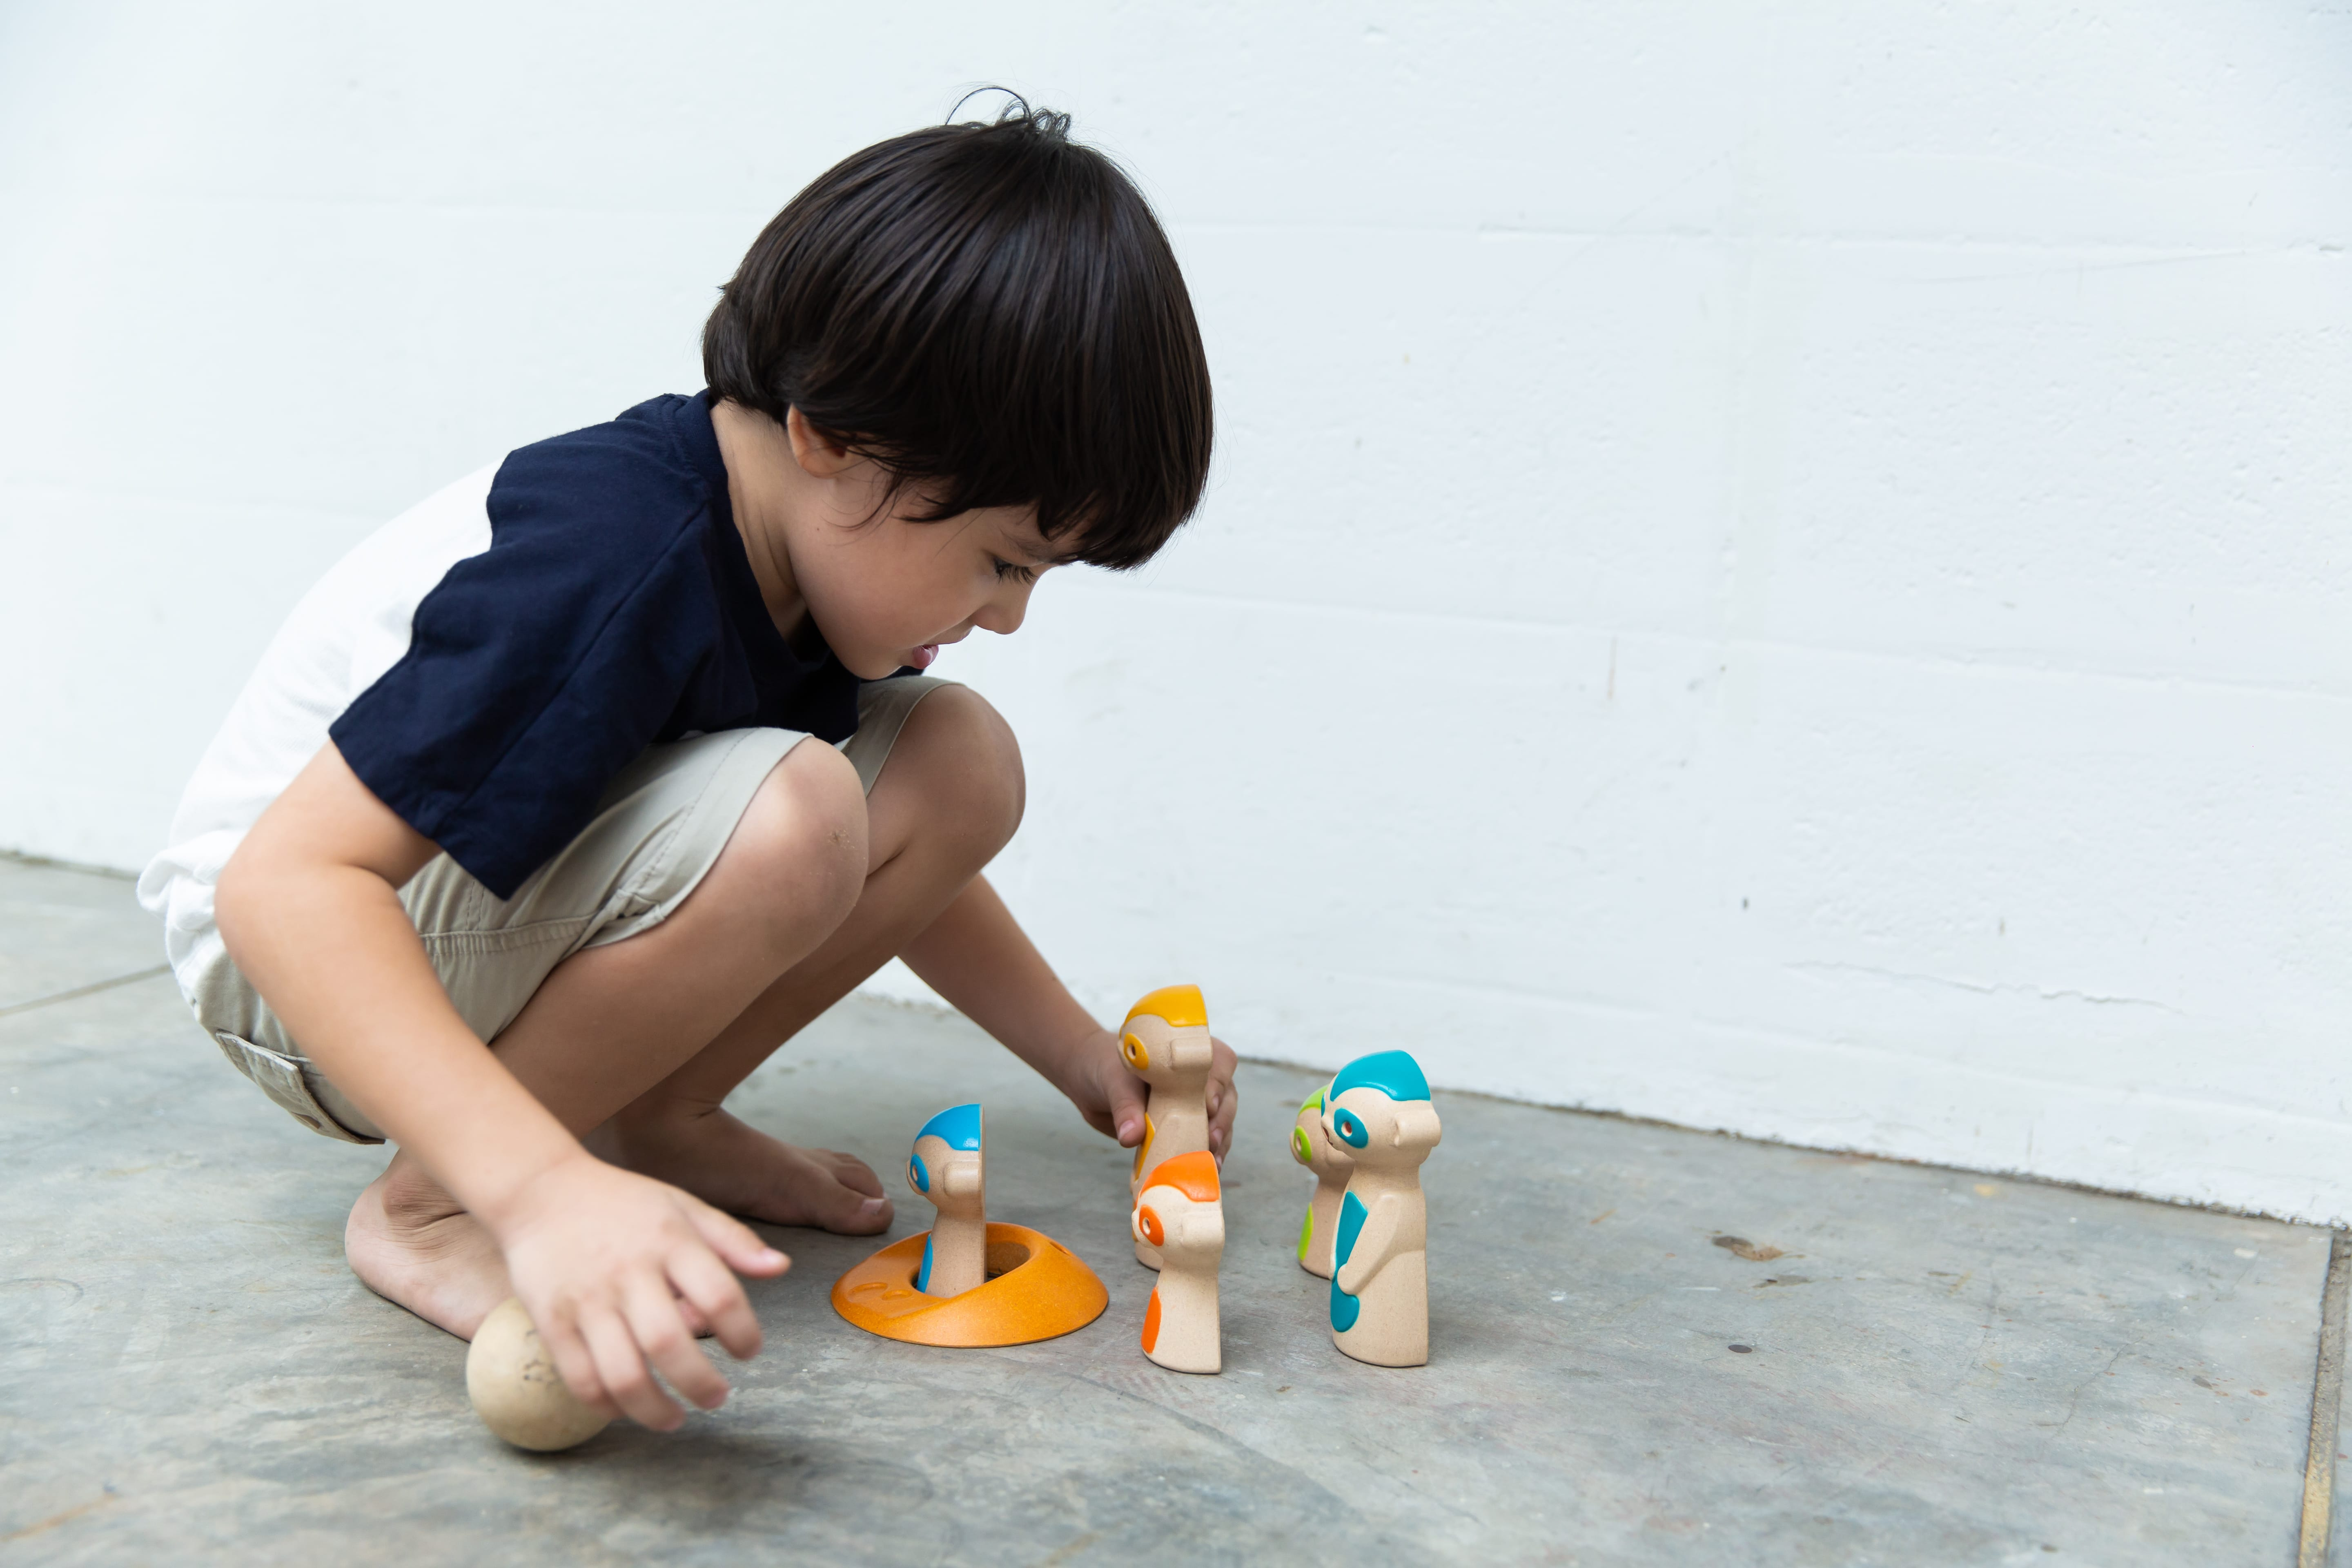 5199_PlanToys_MEERKAT_BOWLING_Active_Play_Concentration_Gross_Motor_Coordination_Social_Fine_Motor_3yrs_Wooden_toys_Education_toys_Safety_Toys_Non-toxic_2.jpg